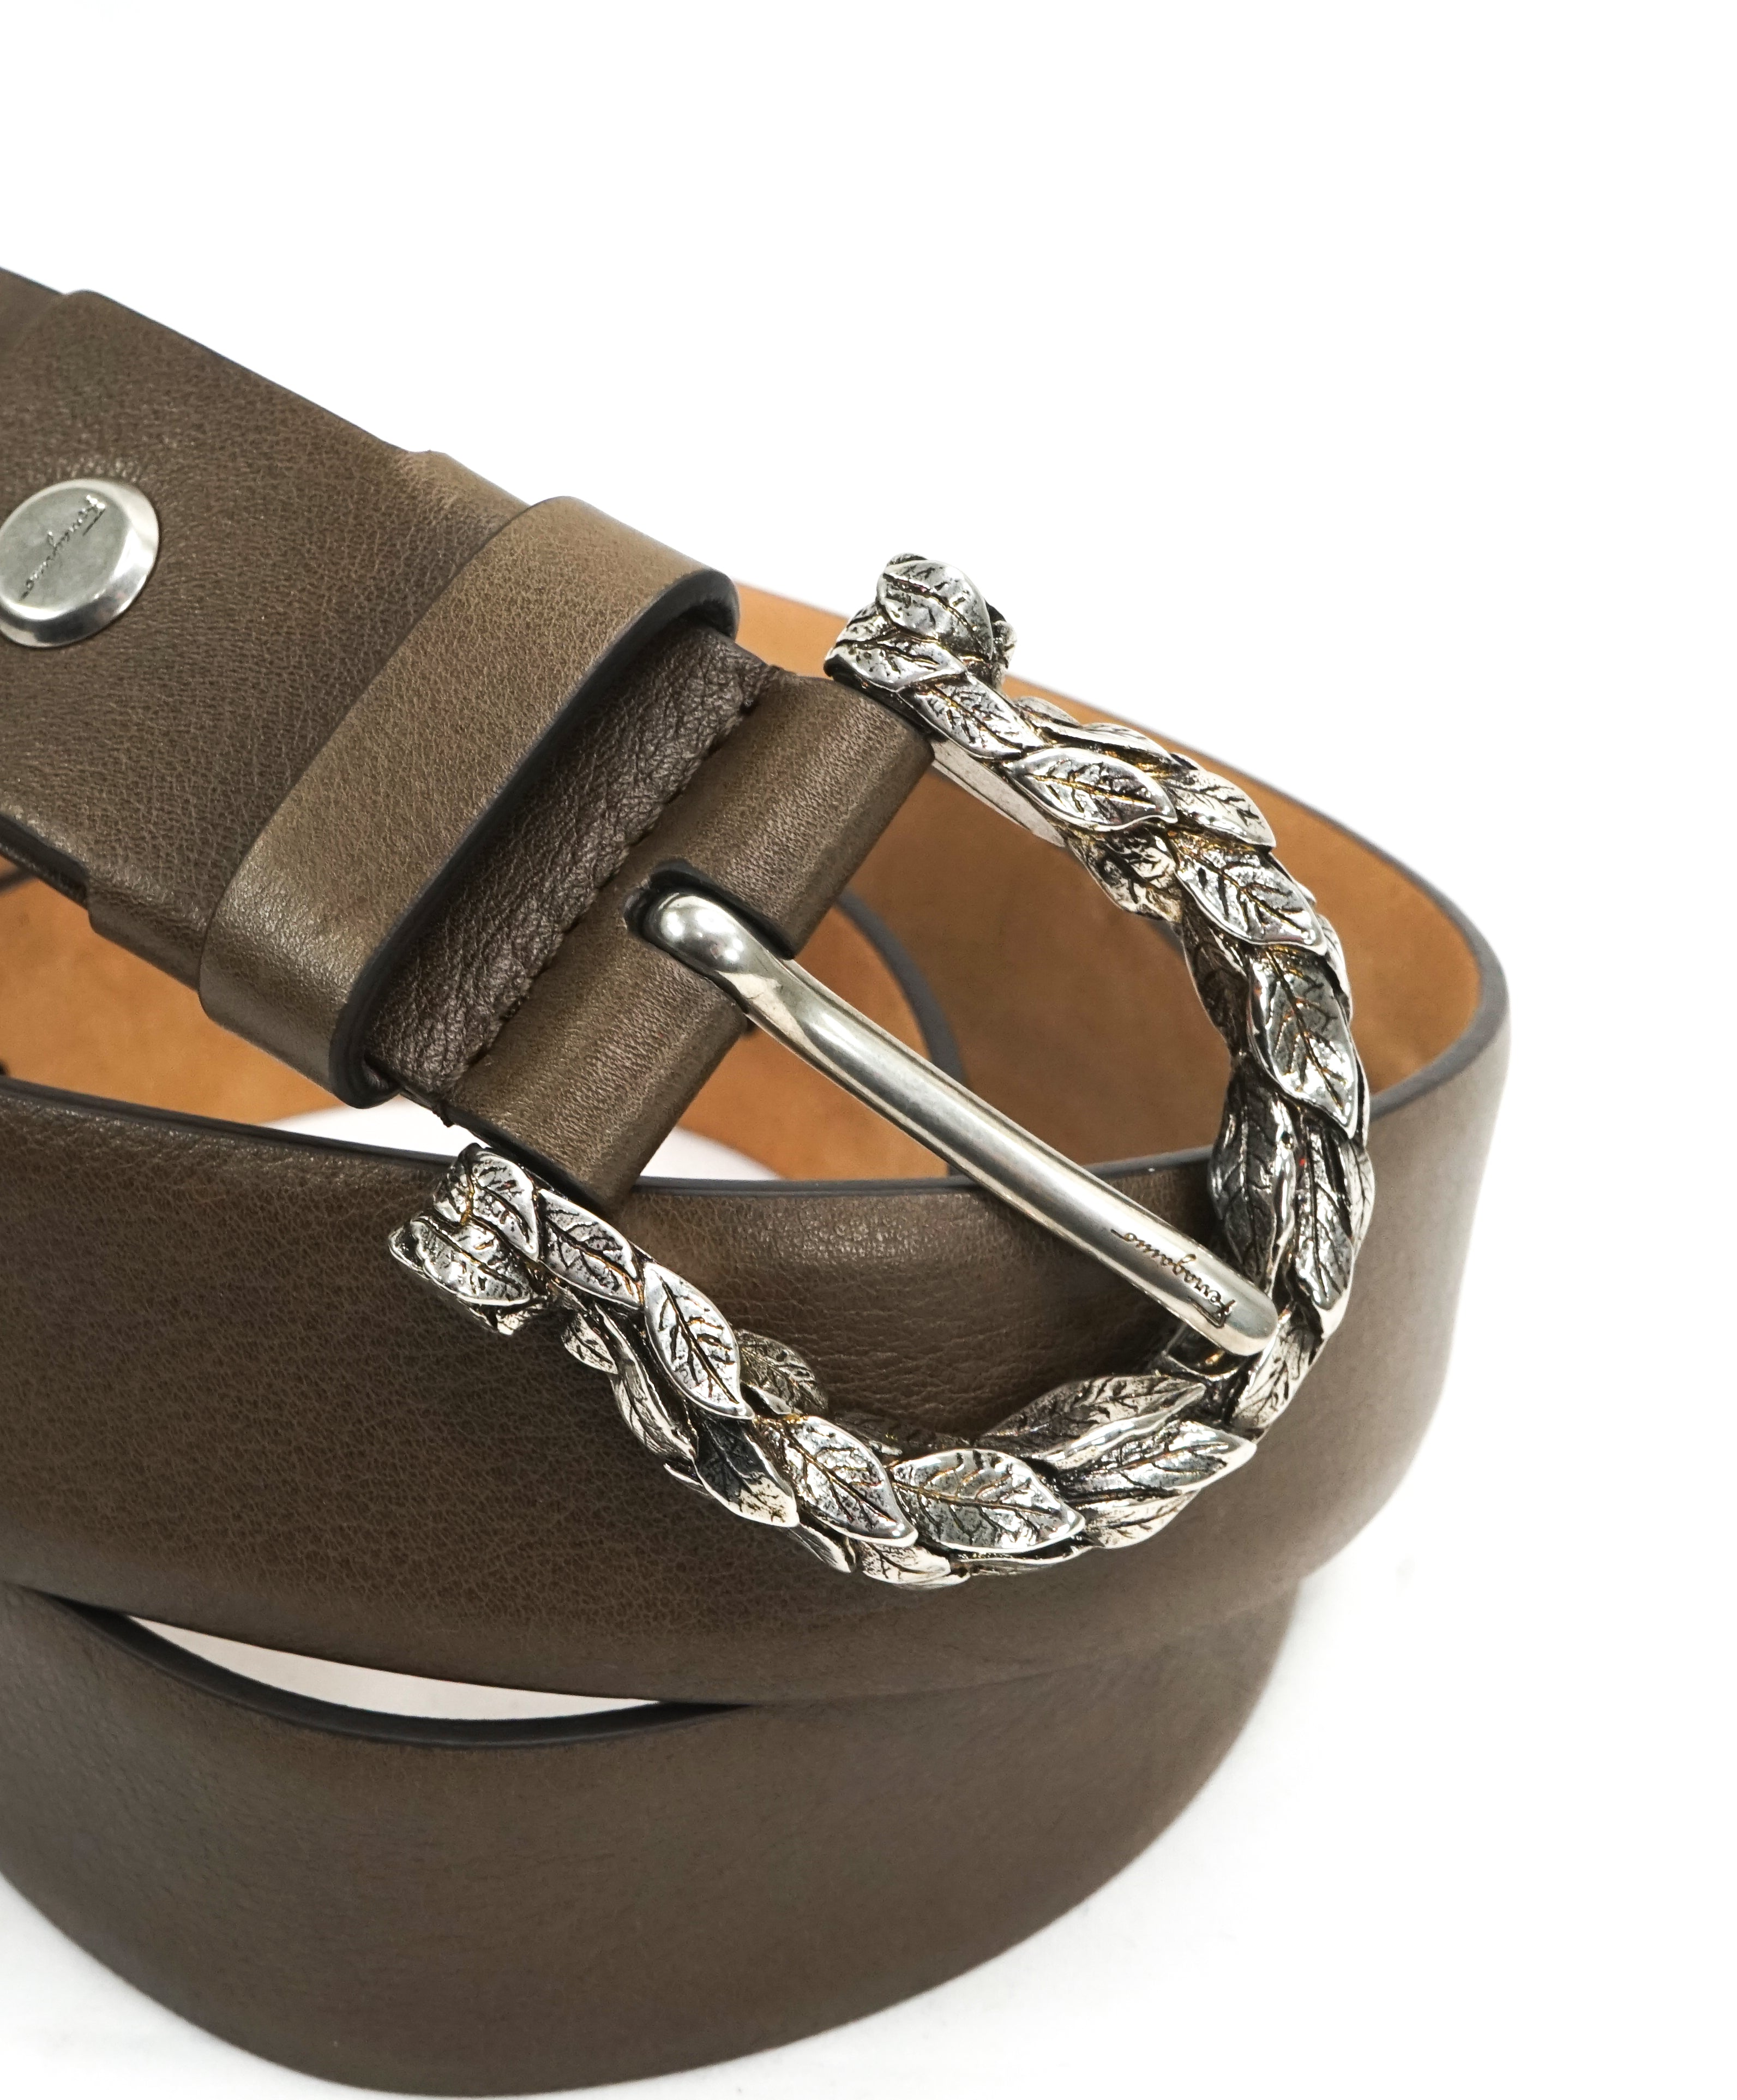 SALVATORE FERRAGAMO - Feather Engraved Olive Tone Leather Gancini Belt - 38W